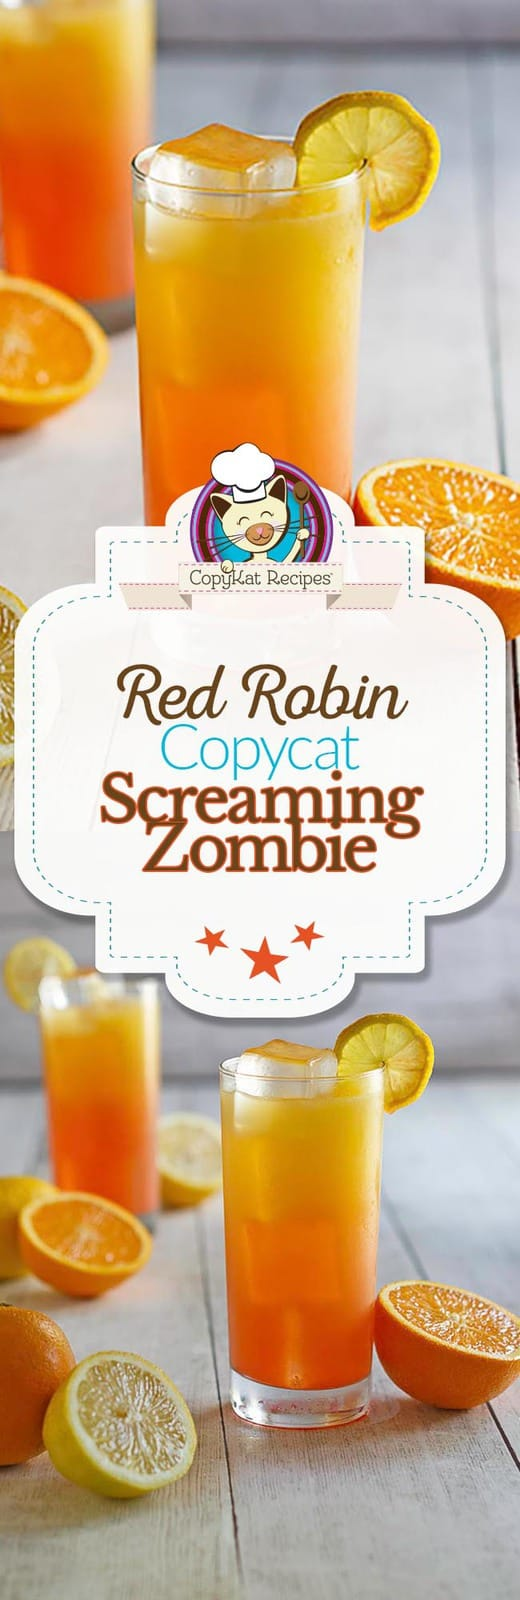 Screaming Zombie Drink Red Robin